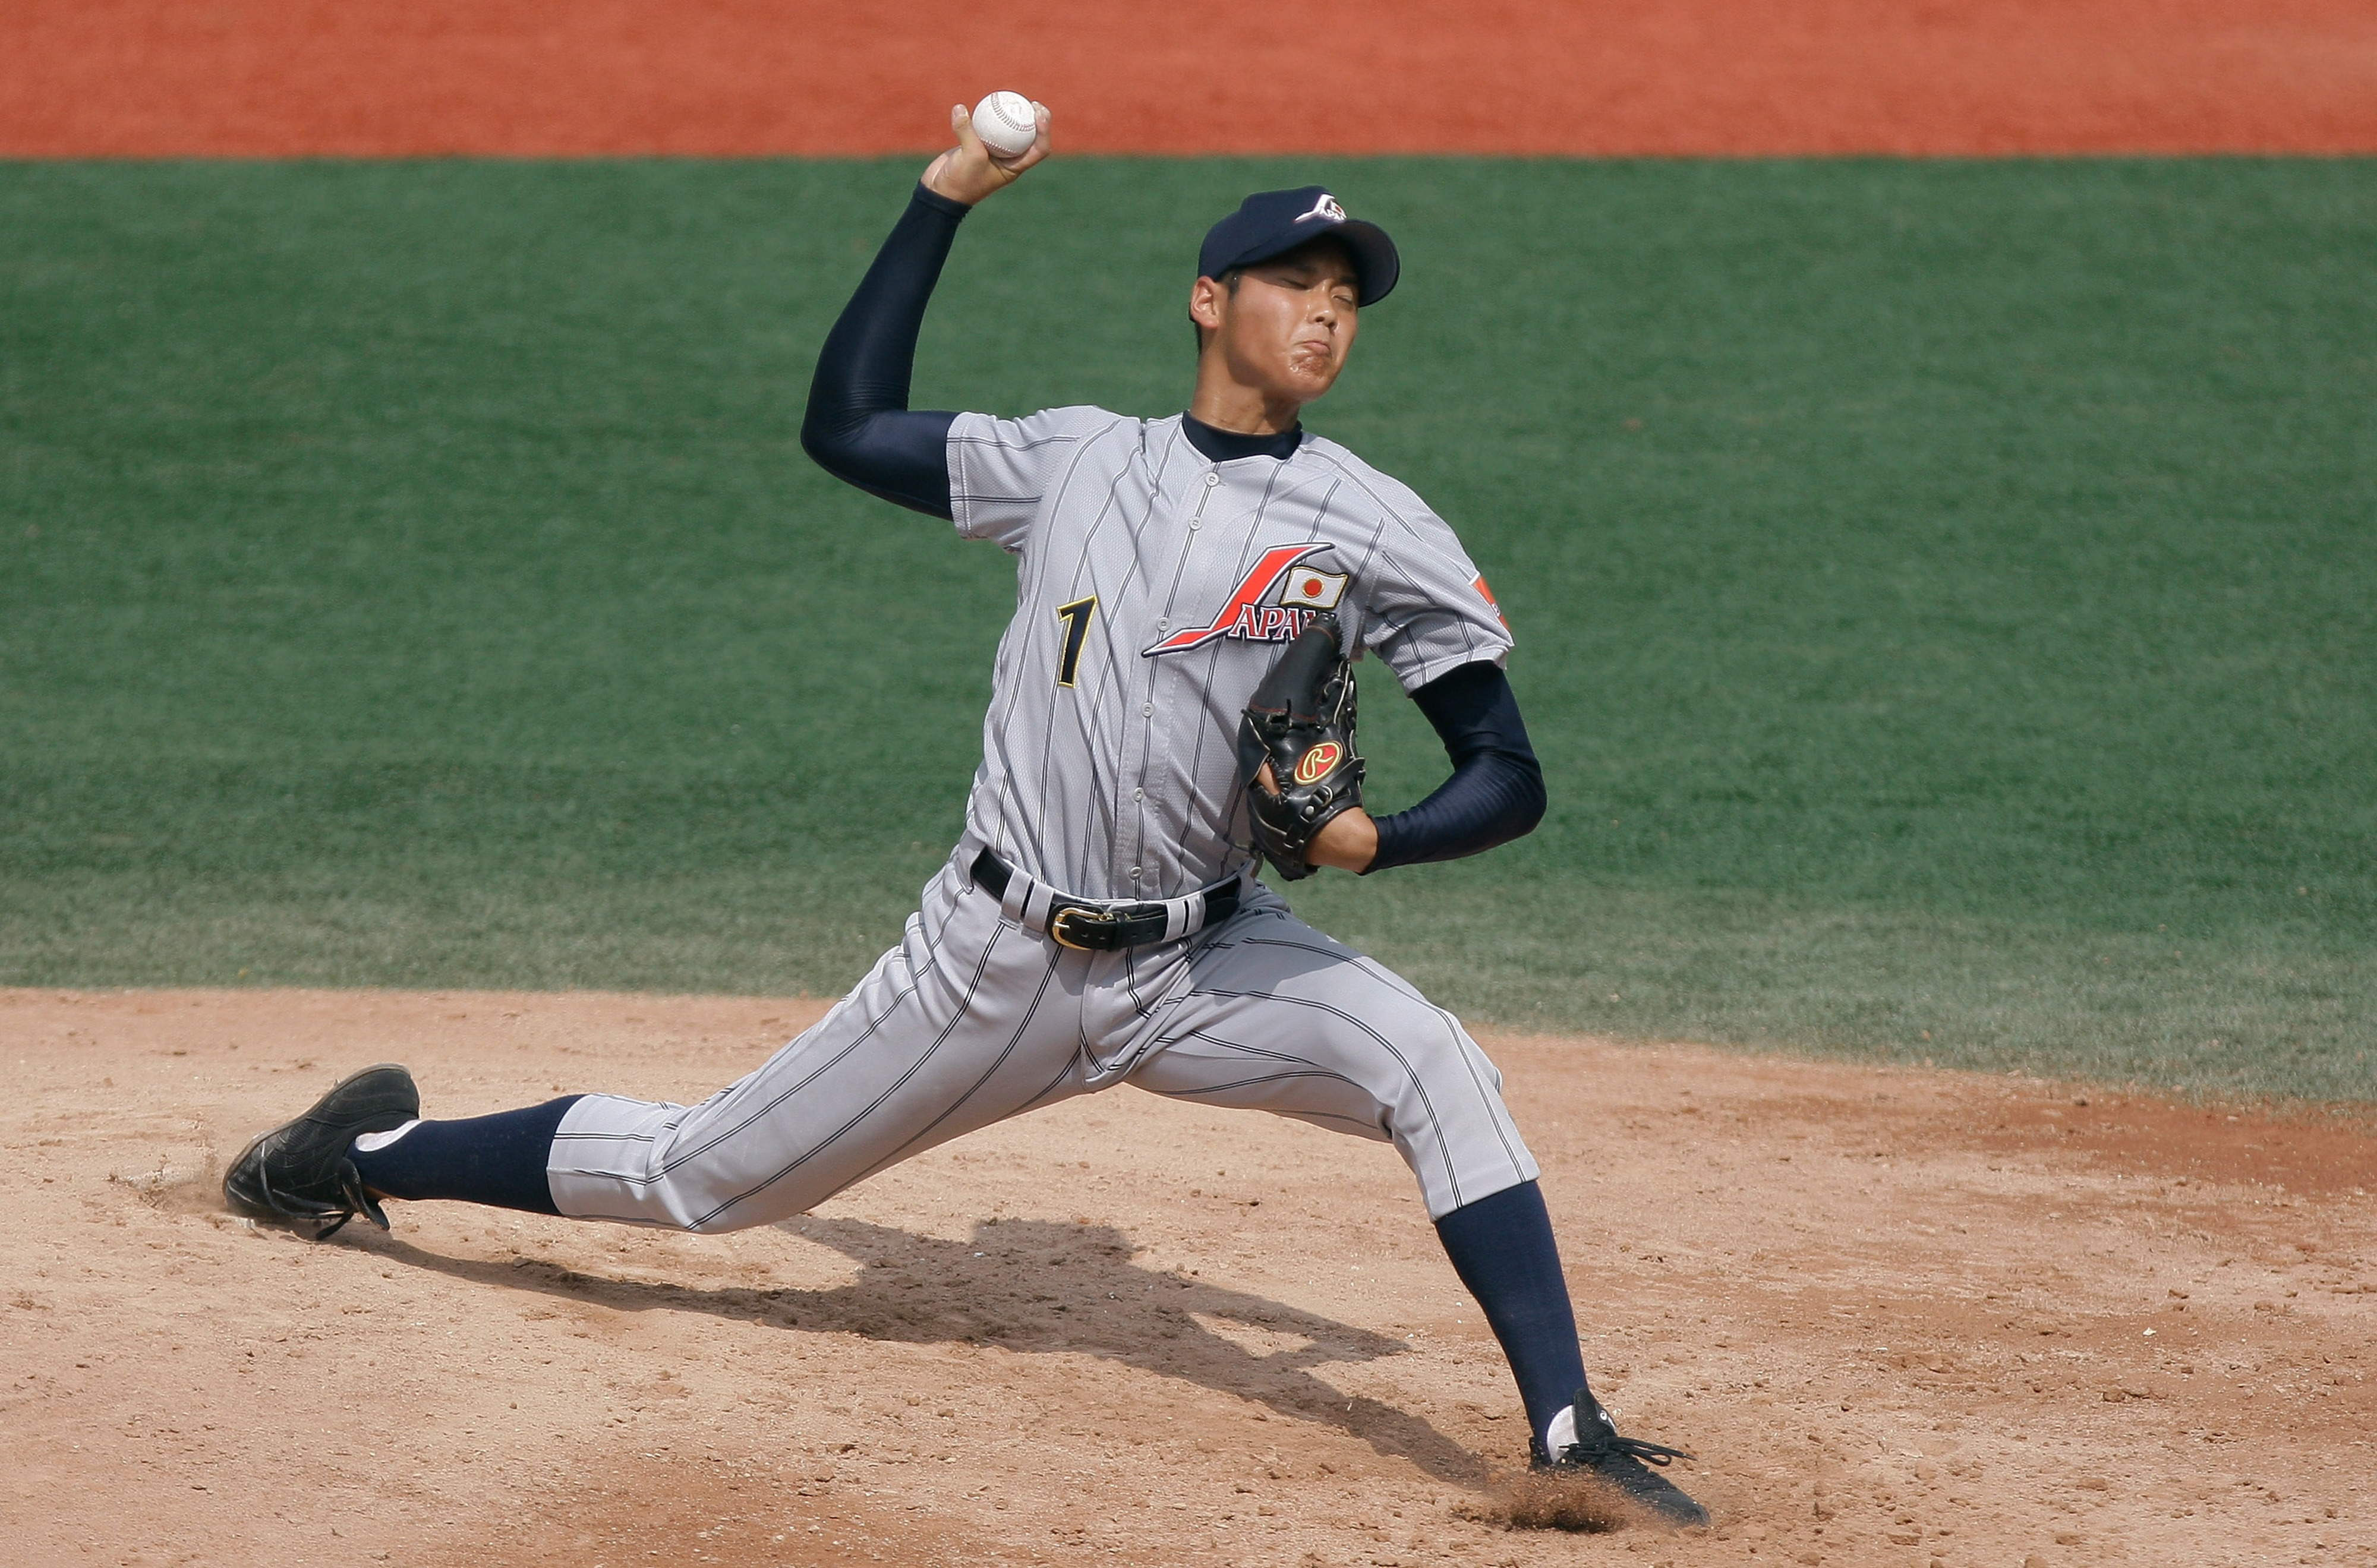 Shohei Otani M39s should purse Shohei Otani SoDo Mojo A Seattle